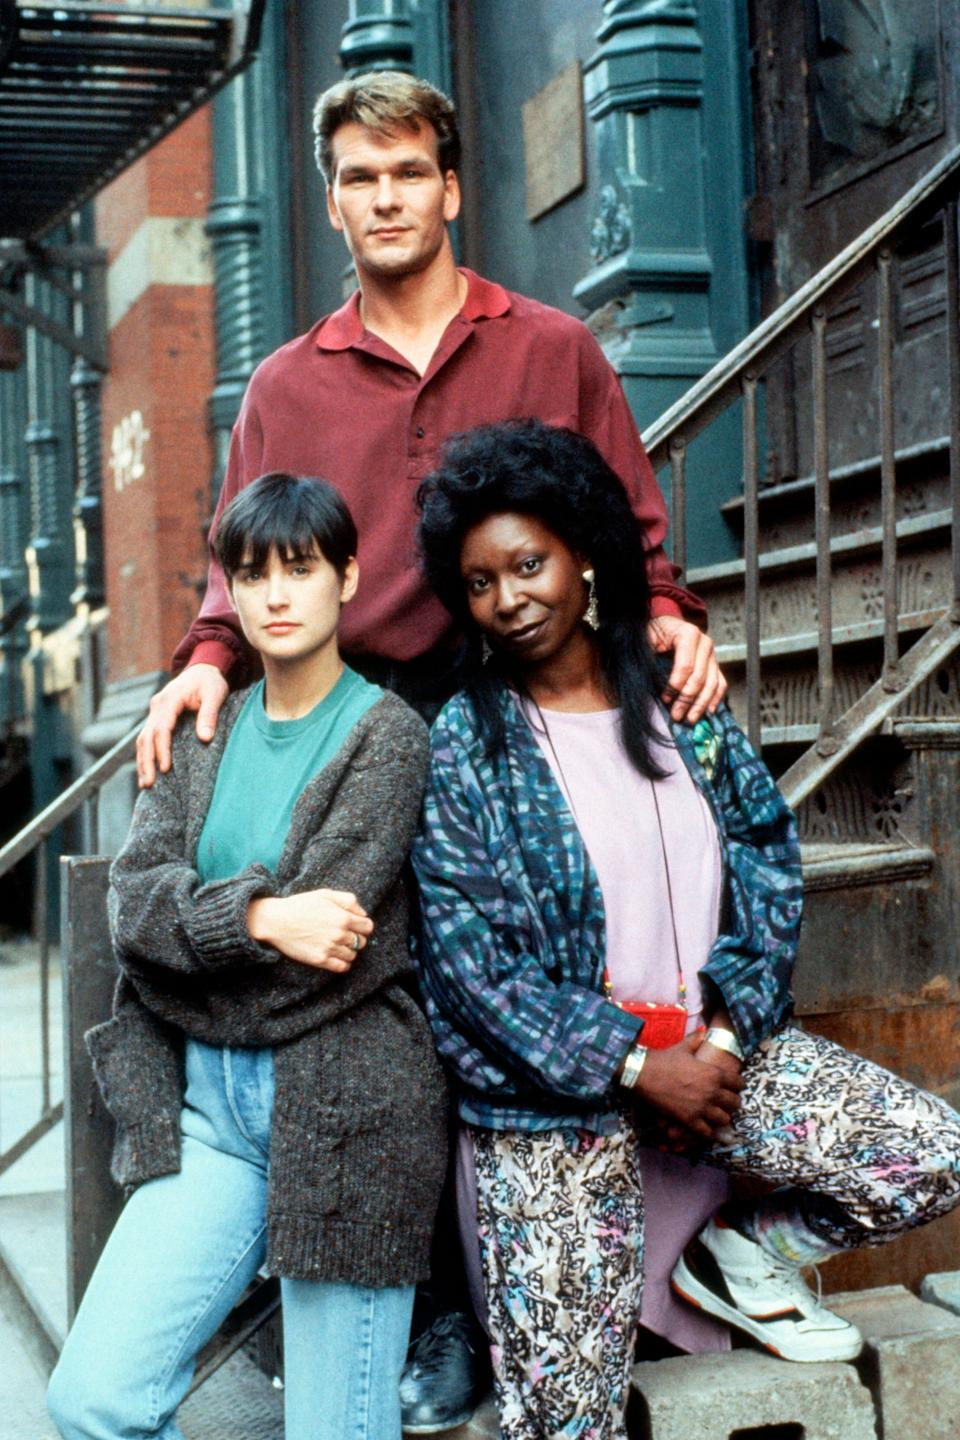 """Patrick Swayze, Demi Moore and Whoopi Goldberg on the set of """"Ghost,"""" which was released in 1990. (Photo: Sunset Boulevard via Getty Images)"""